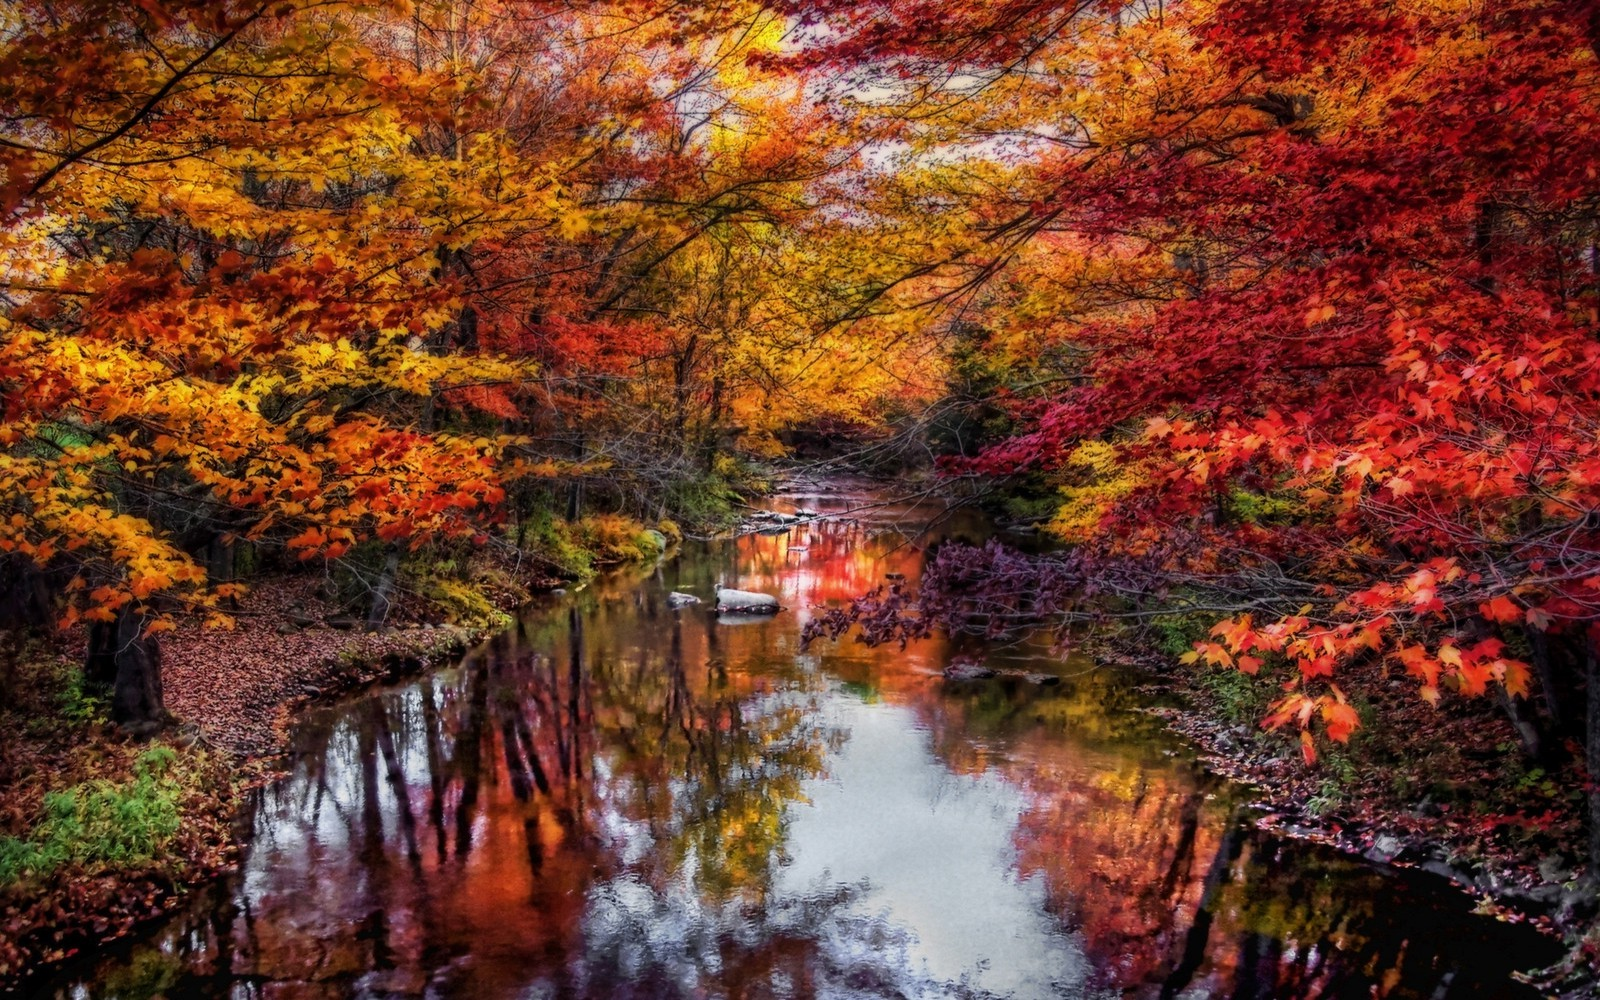 nature, Landscape, River, Leaves, Colorful, Trees, Fall